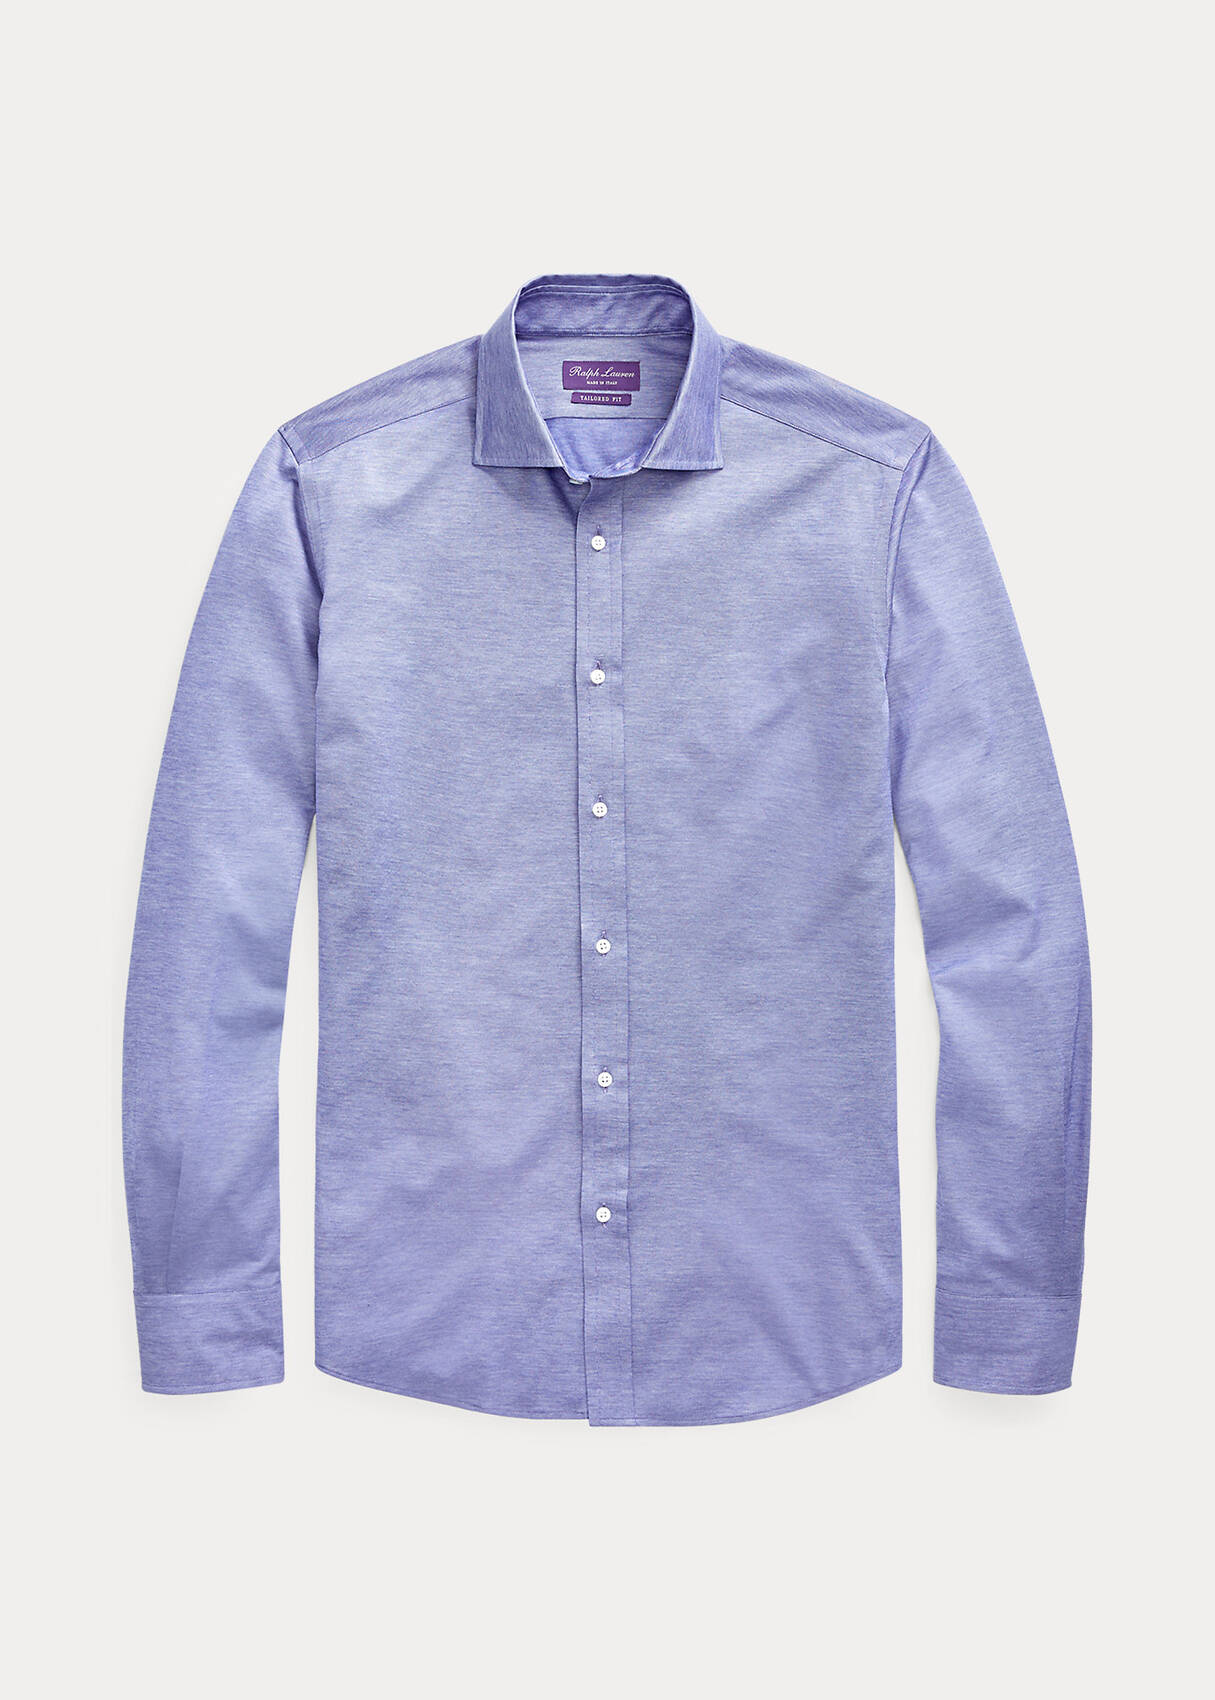 Tailored Fit Knit Shirt